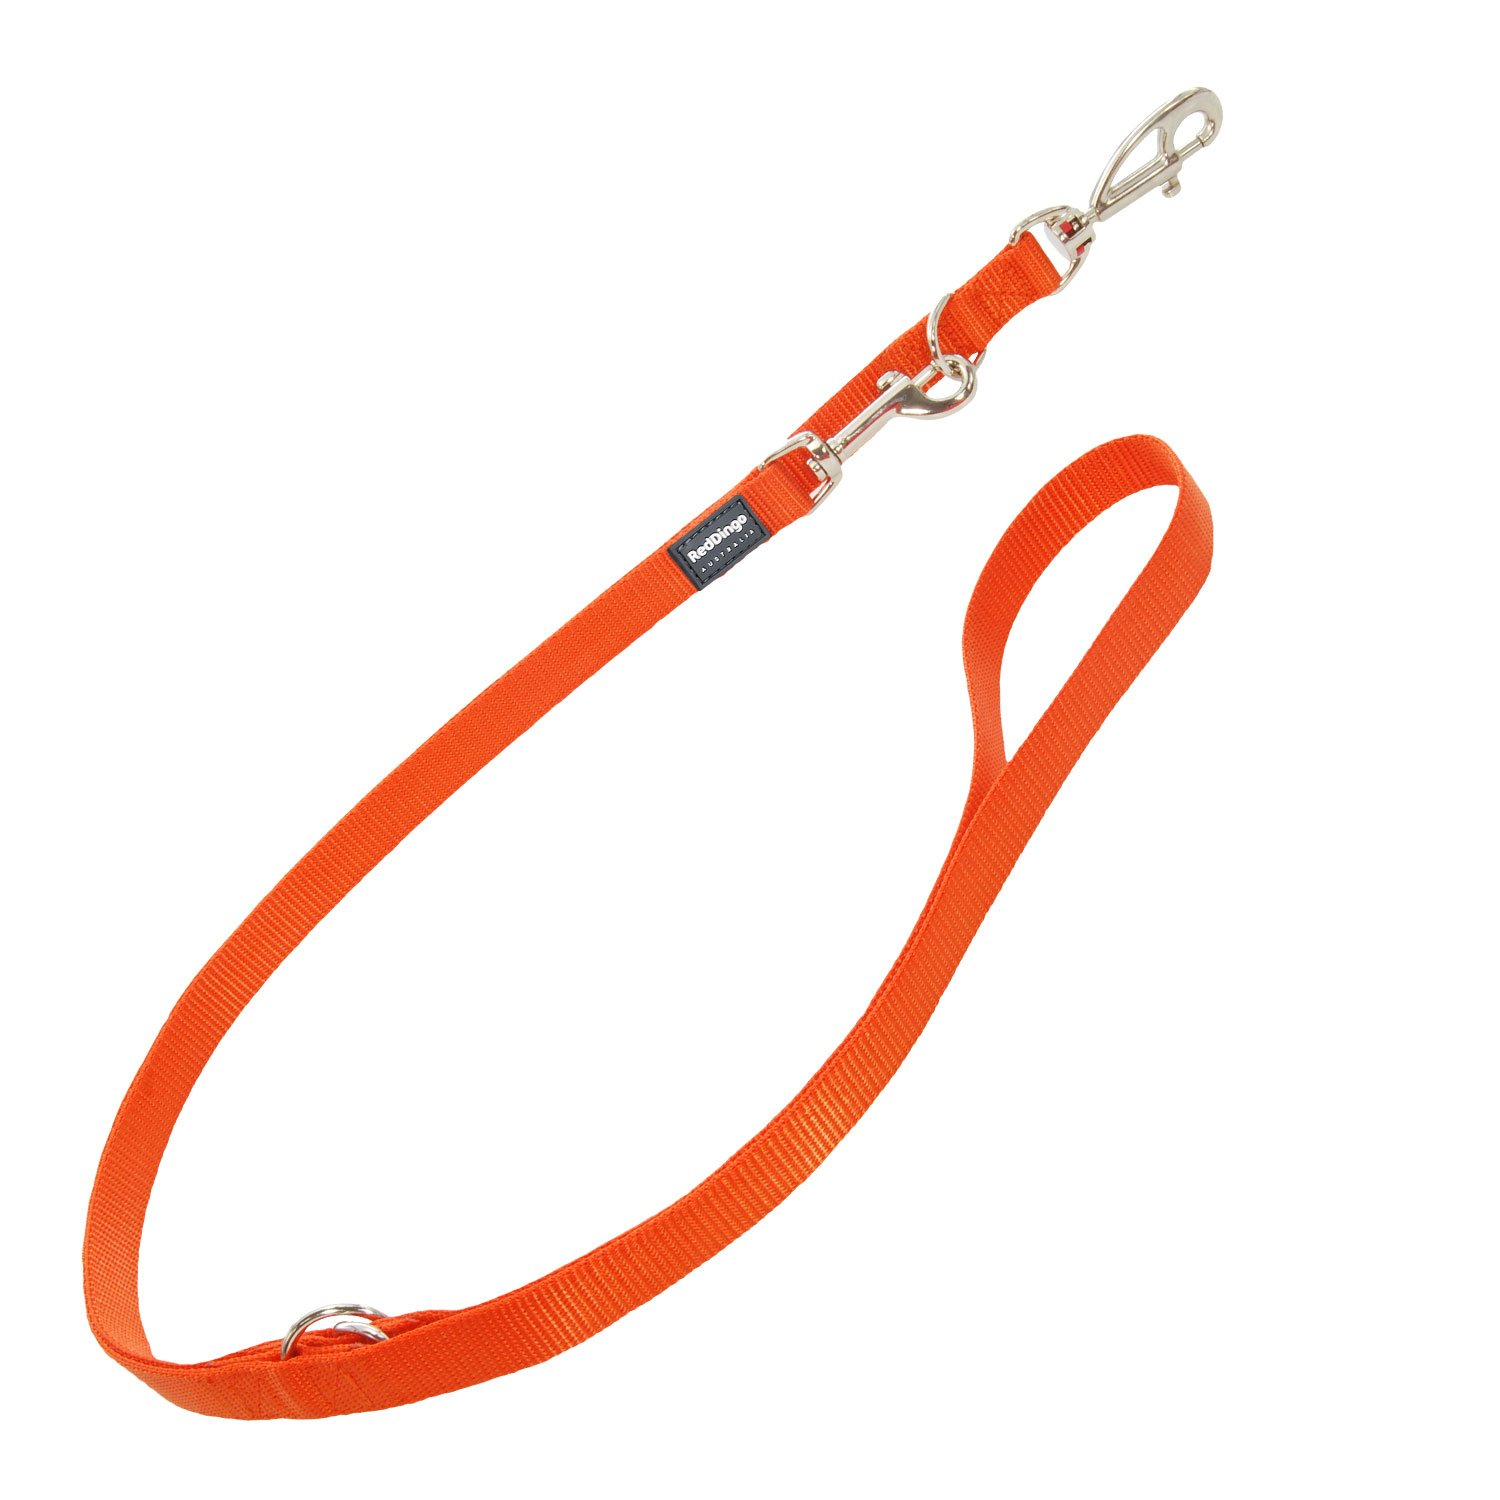 orange youth large   11-13 orange youth large   11-13 Red Dingo Multi-Purpose Dog Lead, Large, orange